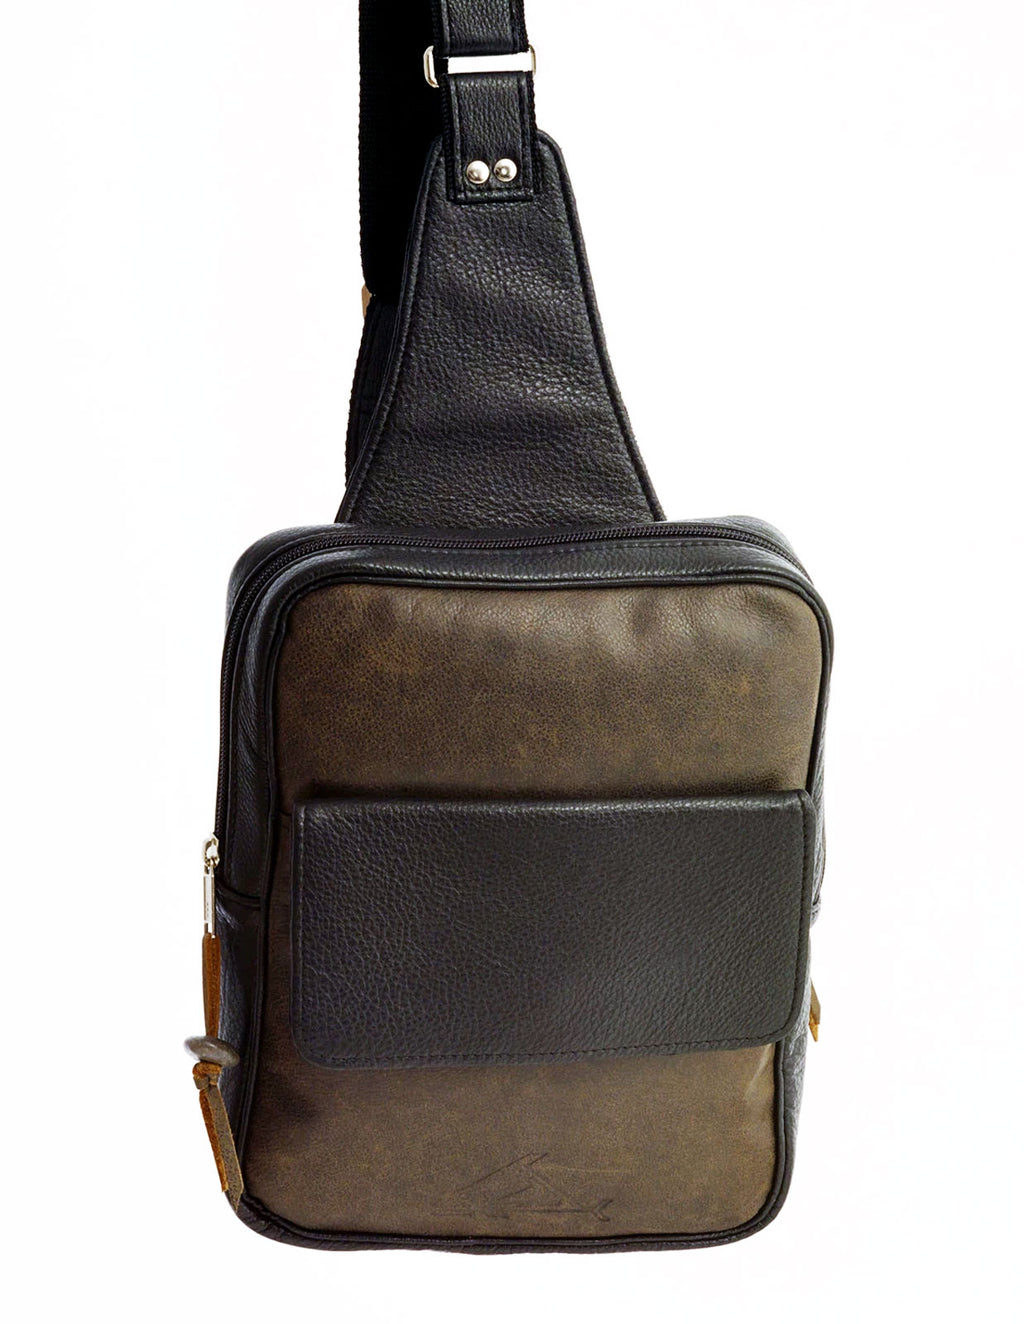 Compact Cross-Body Bag - Indian Summer's designer leather purses